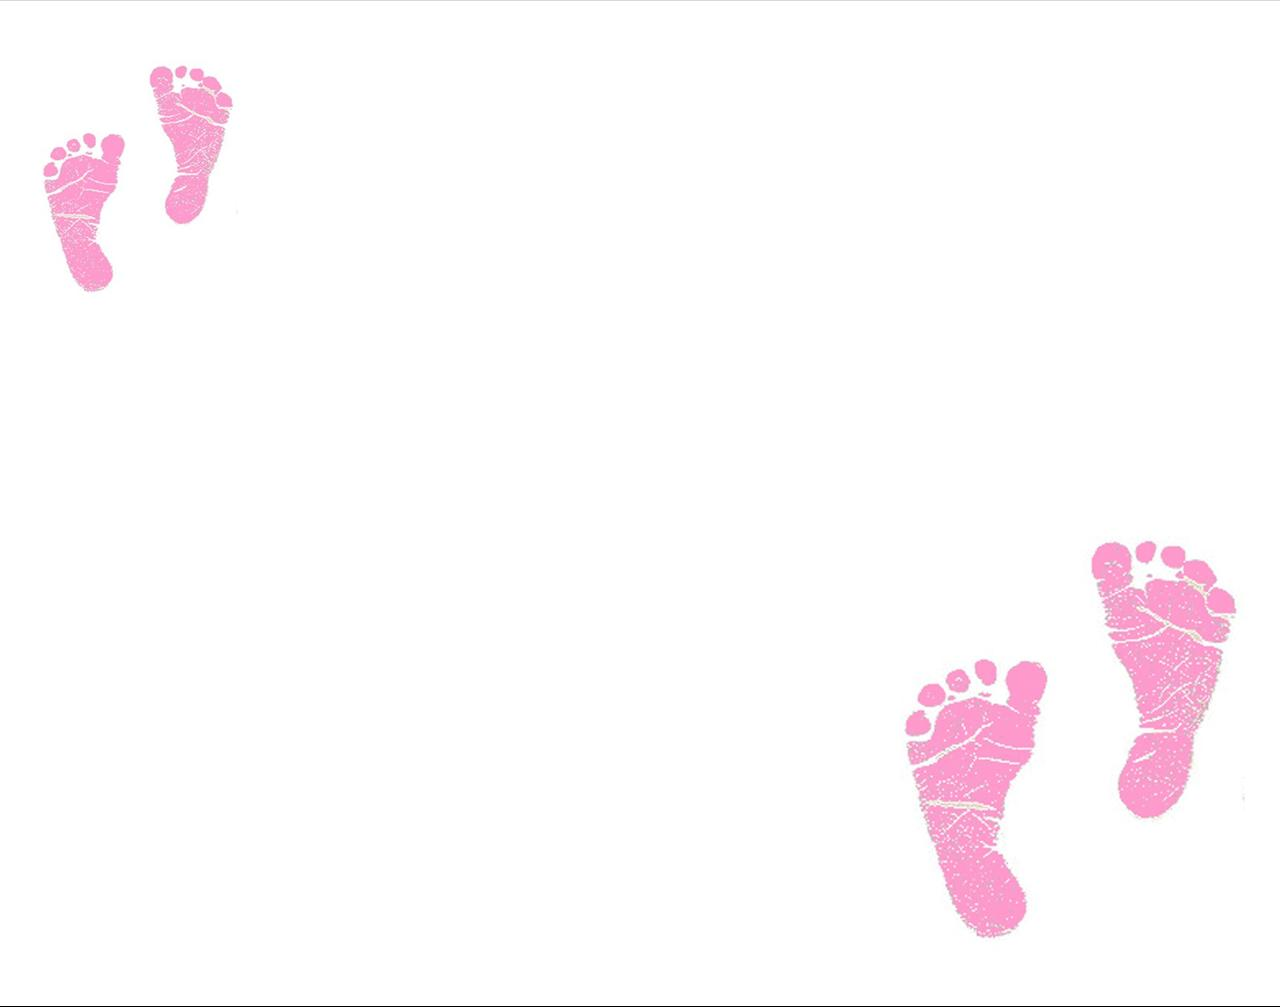 baby feet ppt backgrounds, baby feet ppt photos, baby feet ppt, Modern powerpoint